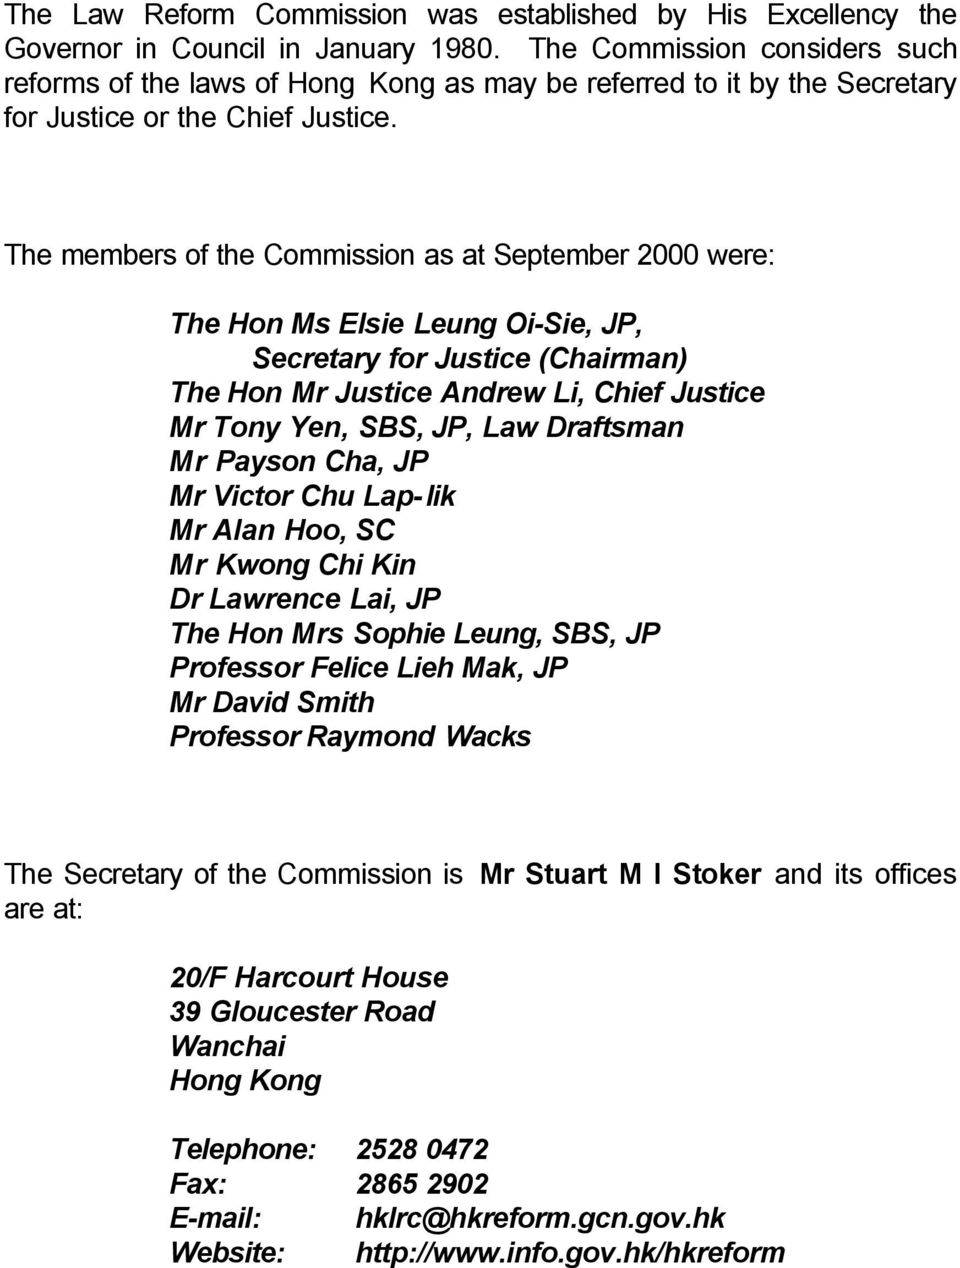 The members of the Commission as at September 2000 were: The Hon Ms Elsie Leung Oi-Sie, JP, Secretary for Justice (Chairman) The Hon Mr Justice Andrew Li, Chief Justice Mr Tony Yen, SBS, JP, Law